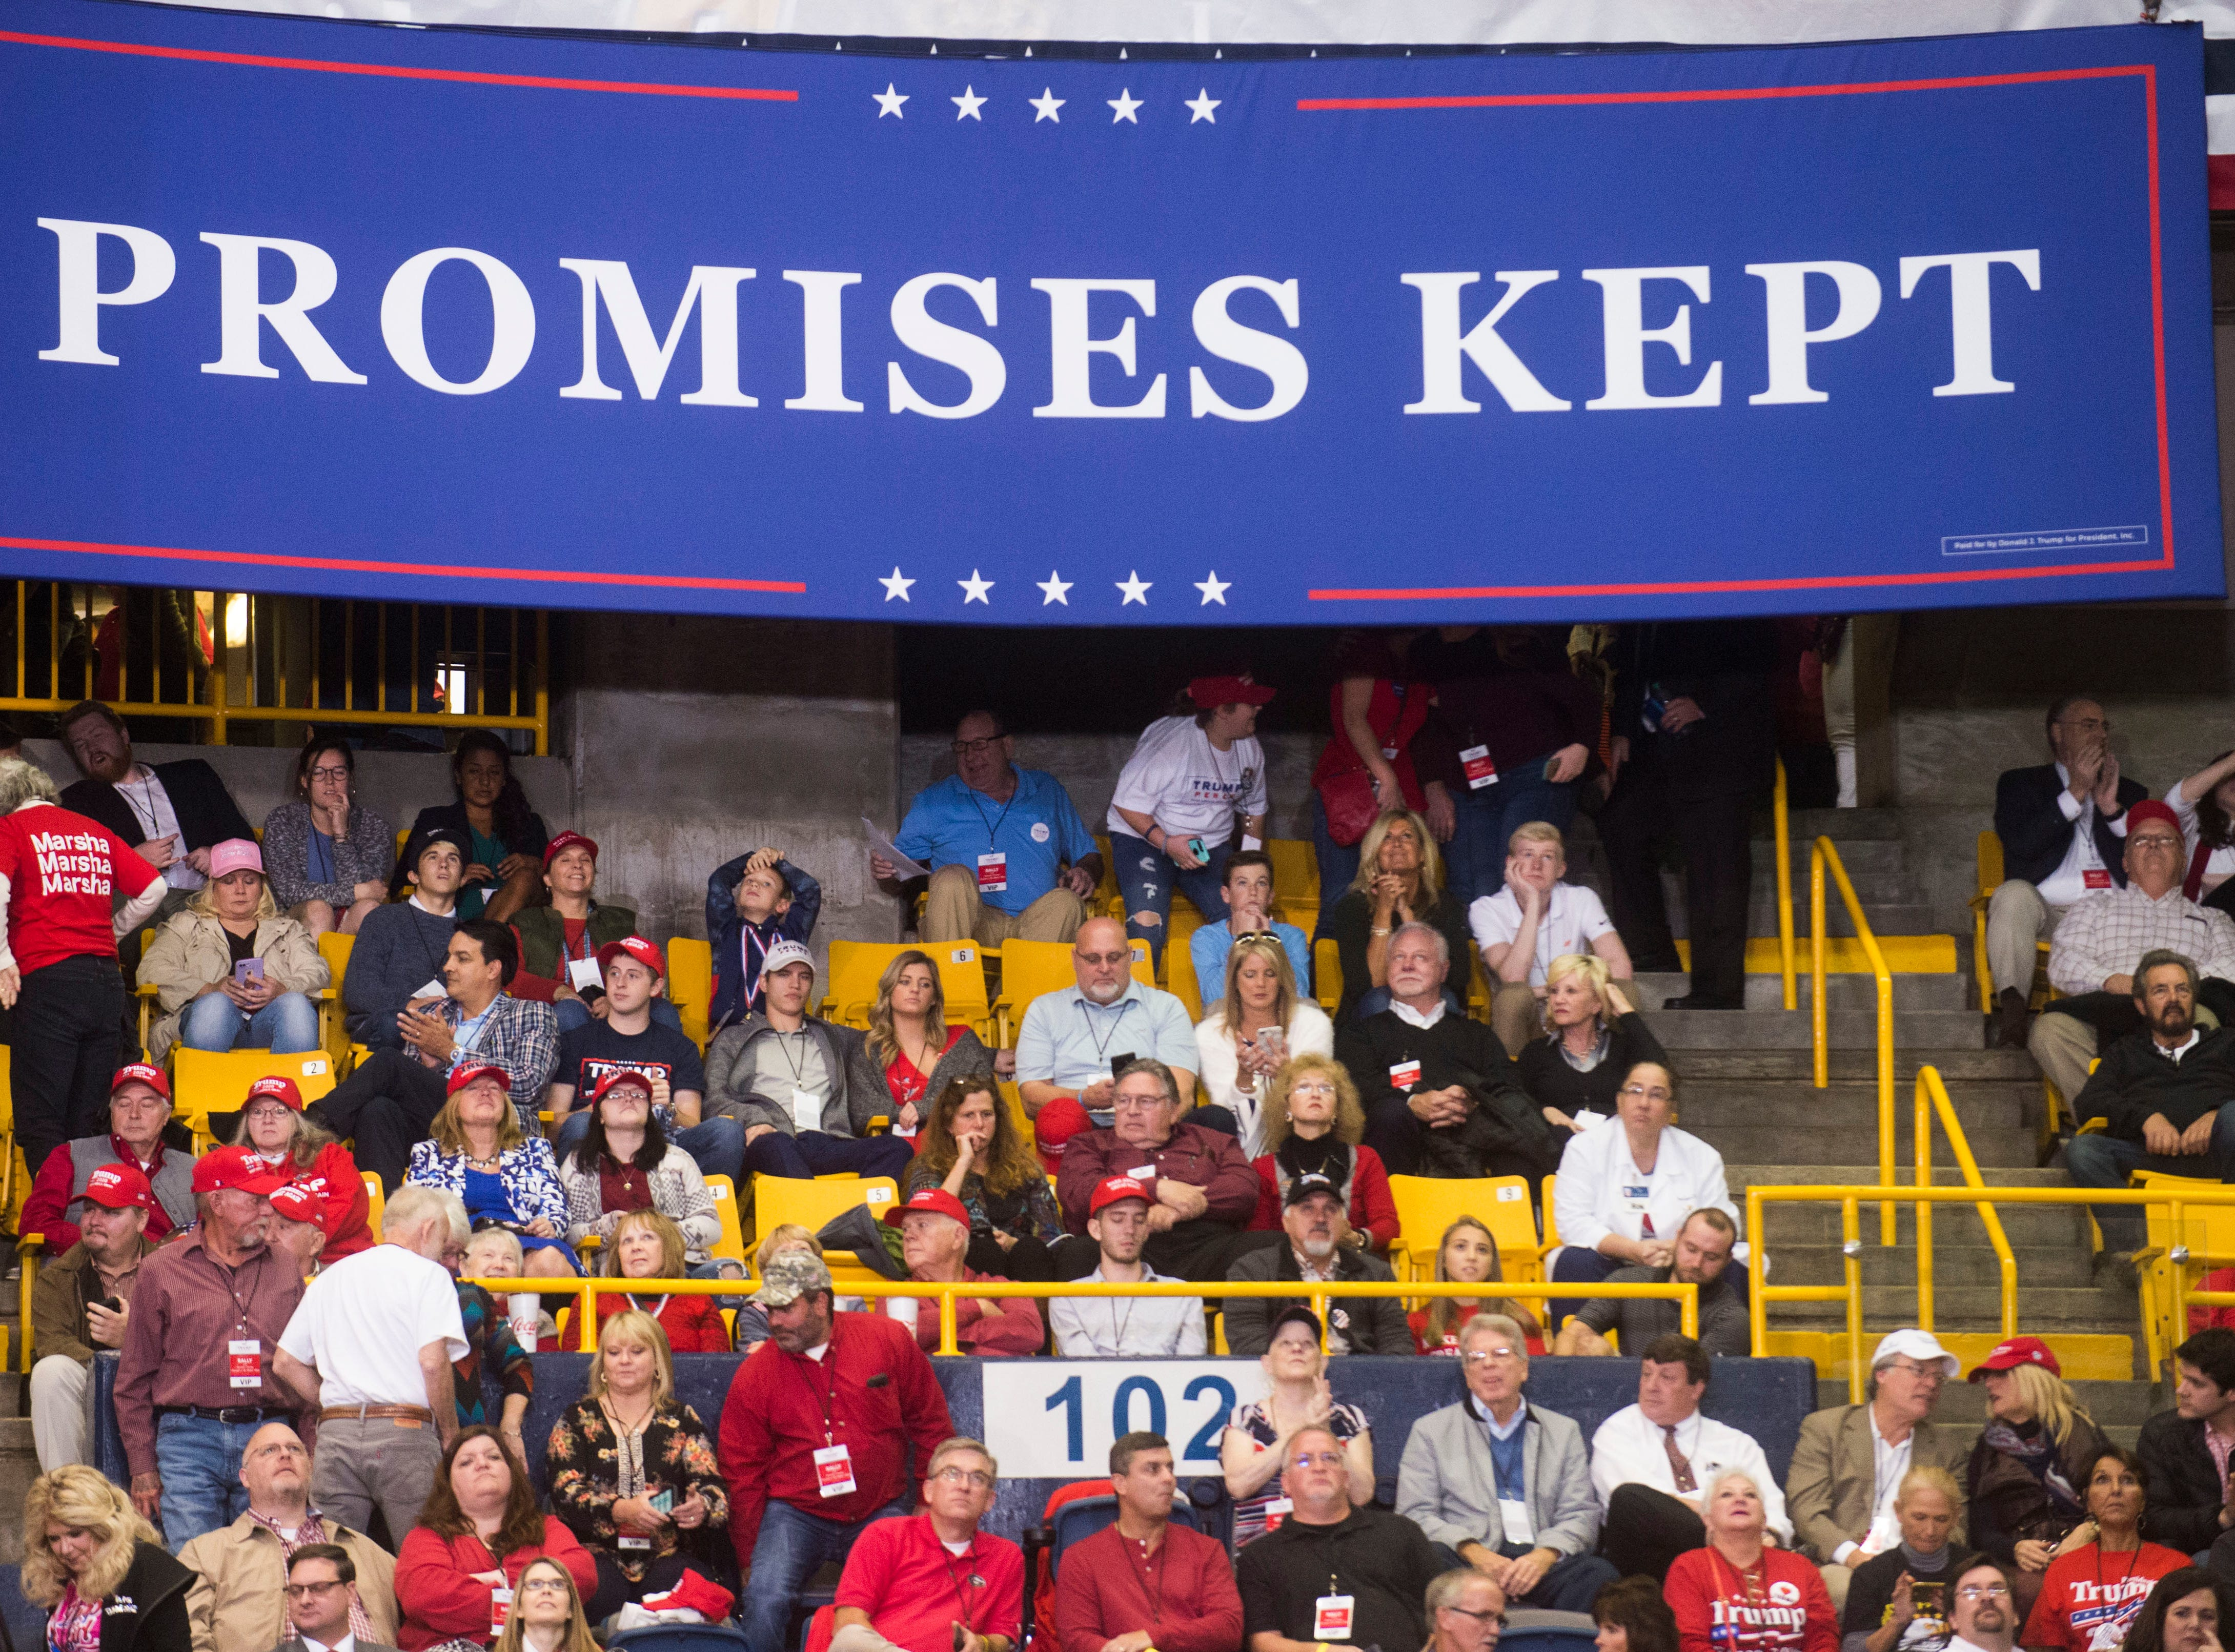 Donald Trump supporters wait before a Donald Trump rally in support of U.S. Rep. Marsha Blackburn for the U.S. Senate at McKenzie Arena in Chattanooga, Sunday, Nov. 4, 2018.